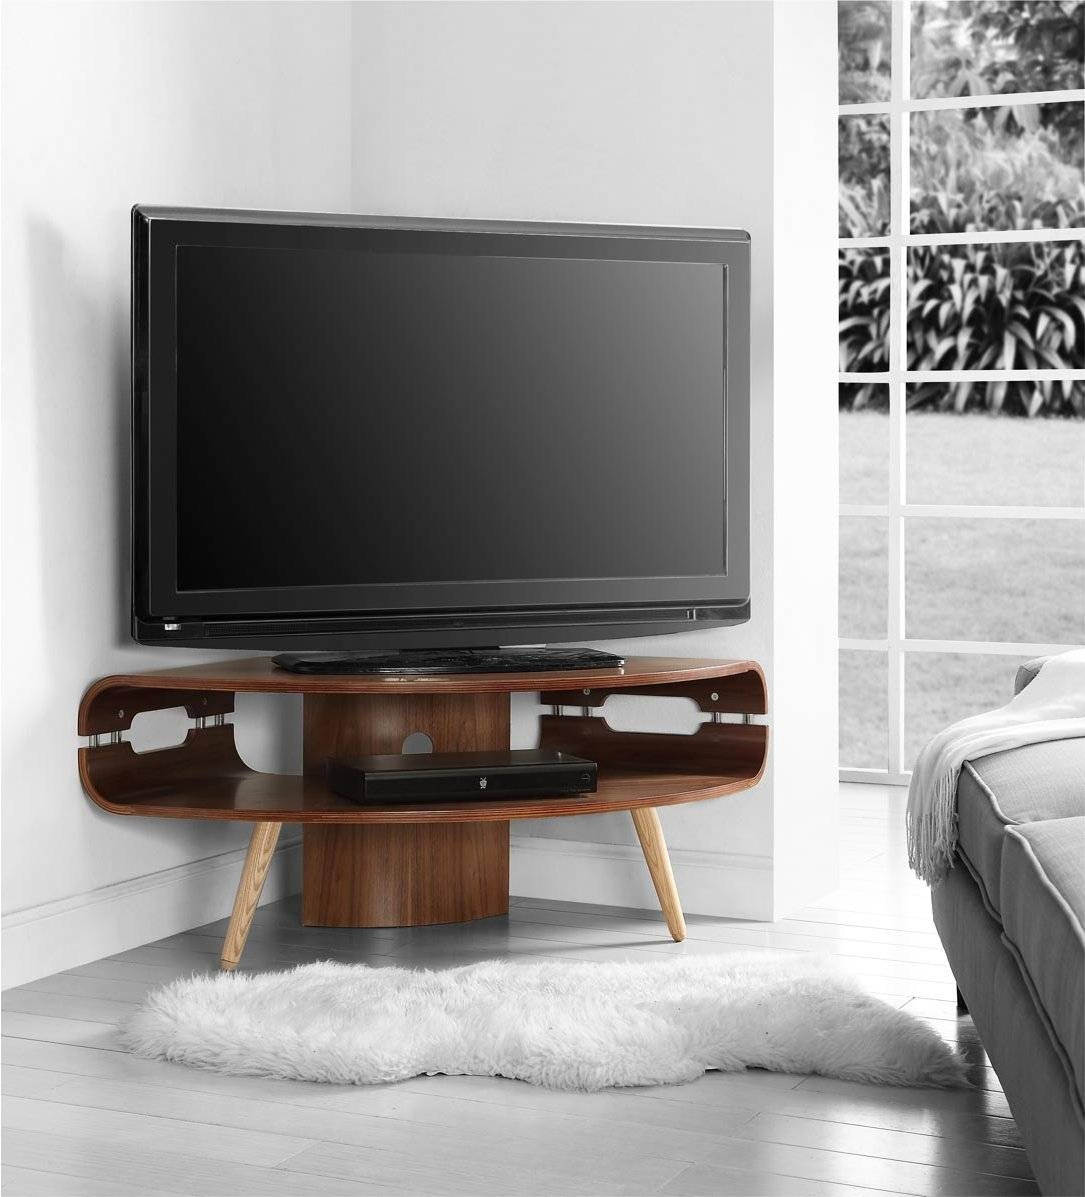 Jual Jf701 Large Tv Stands throughout Tv Stands For Large Tvs (Image 4 of 15)